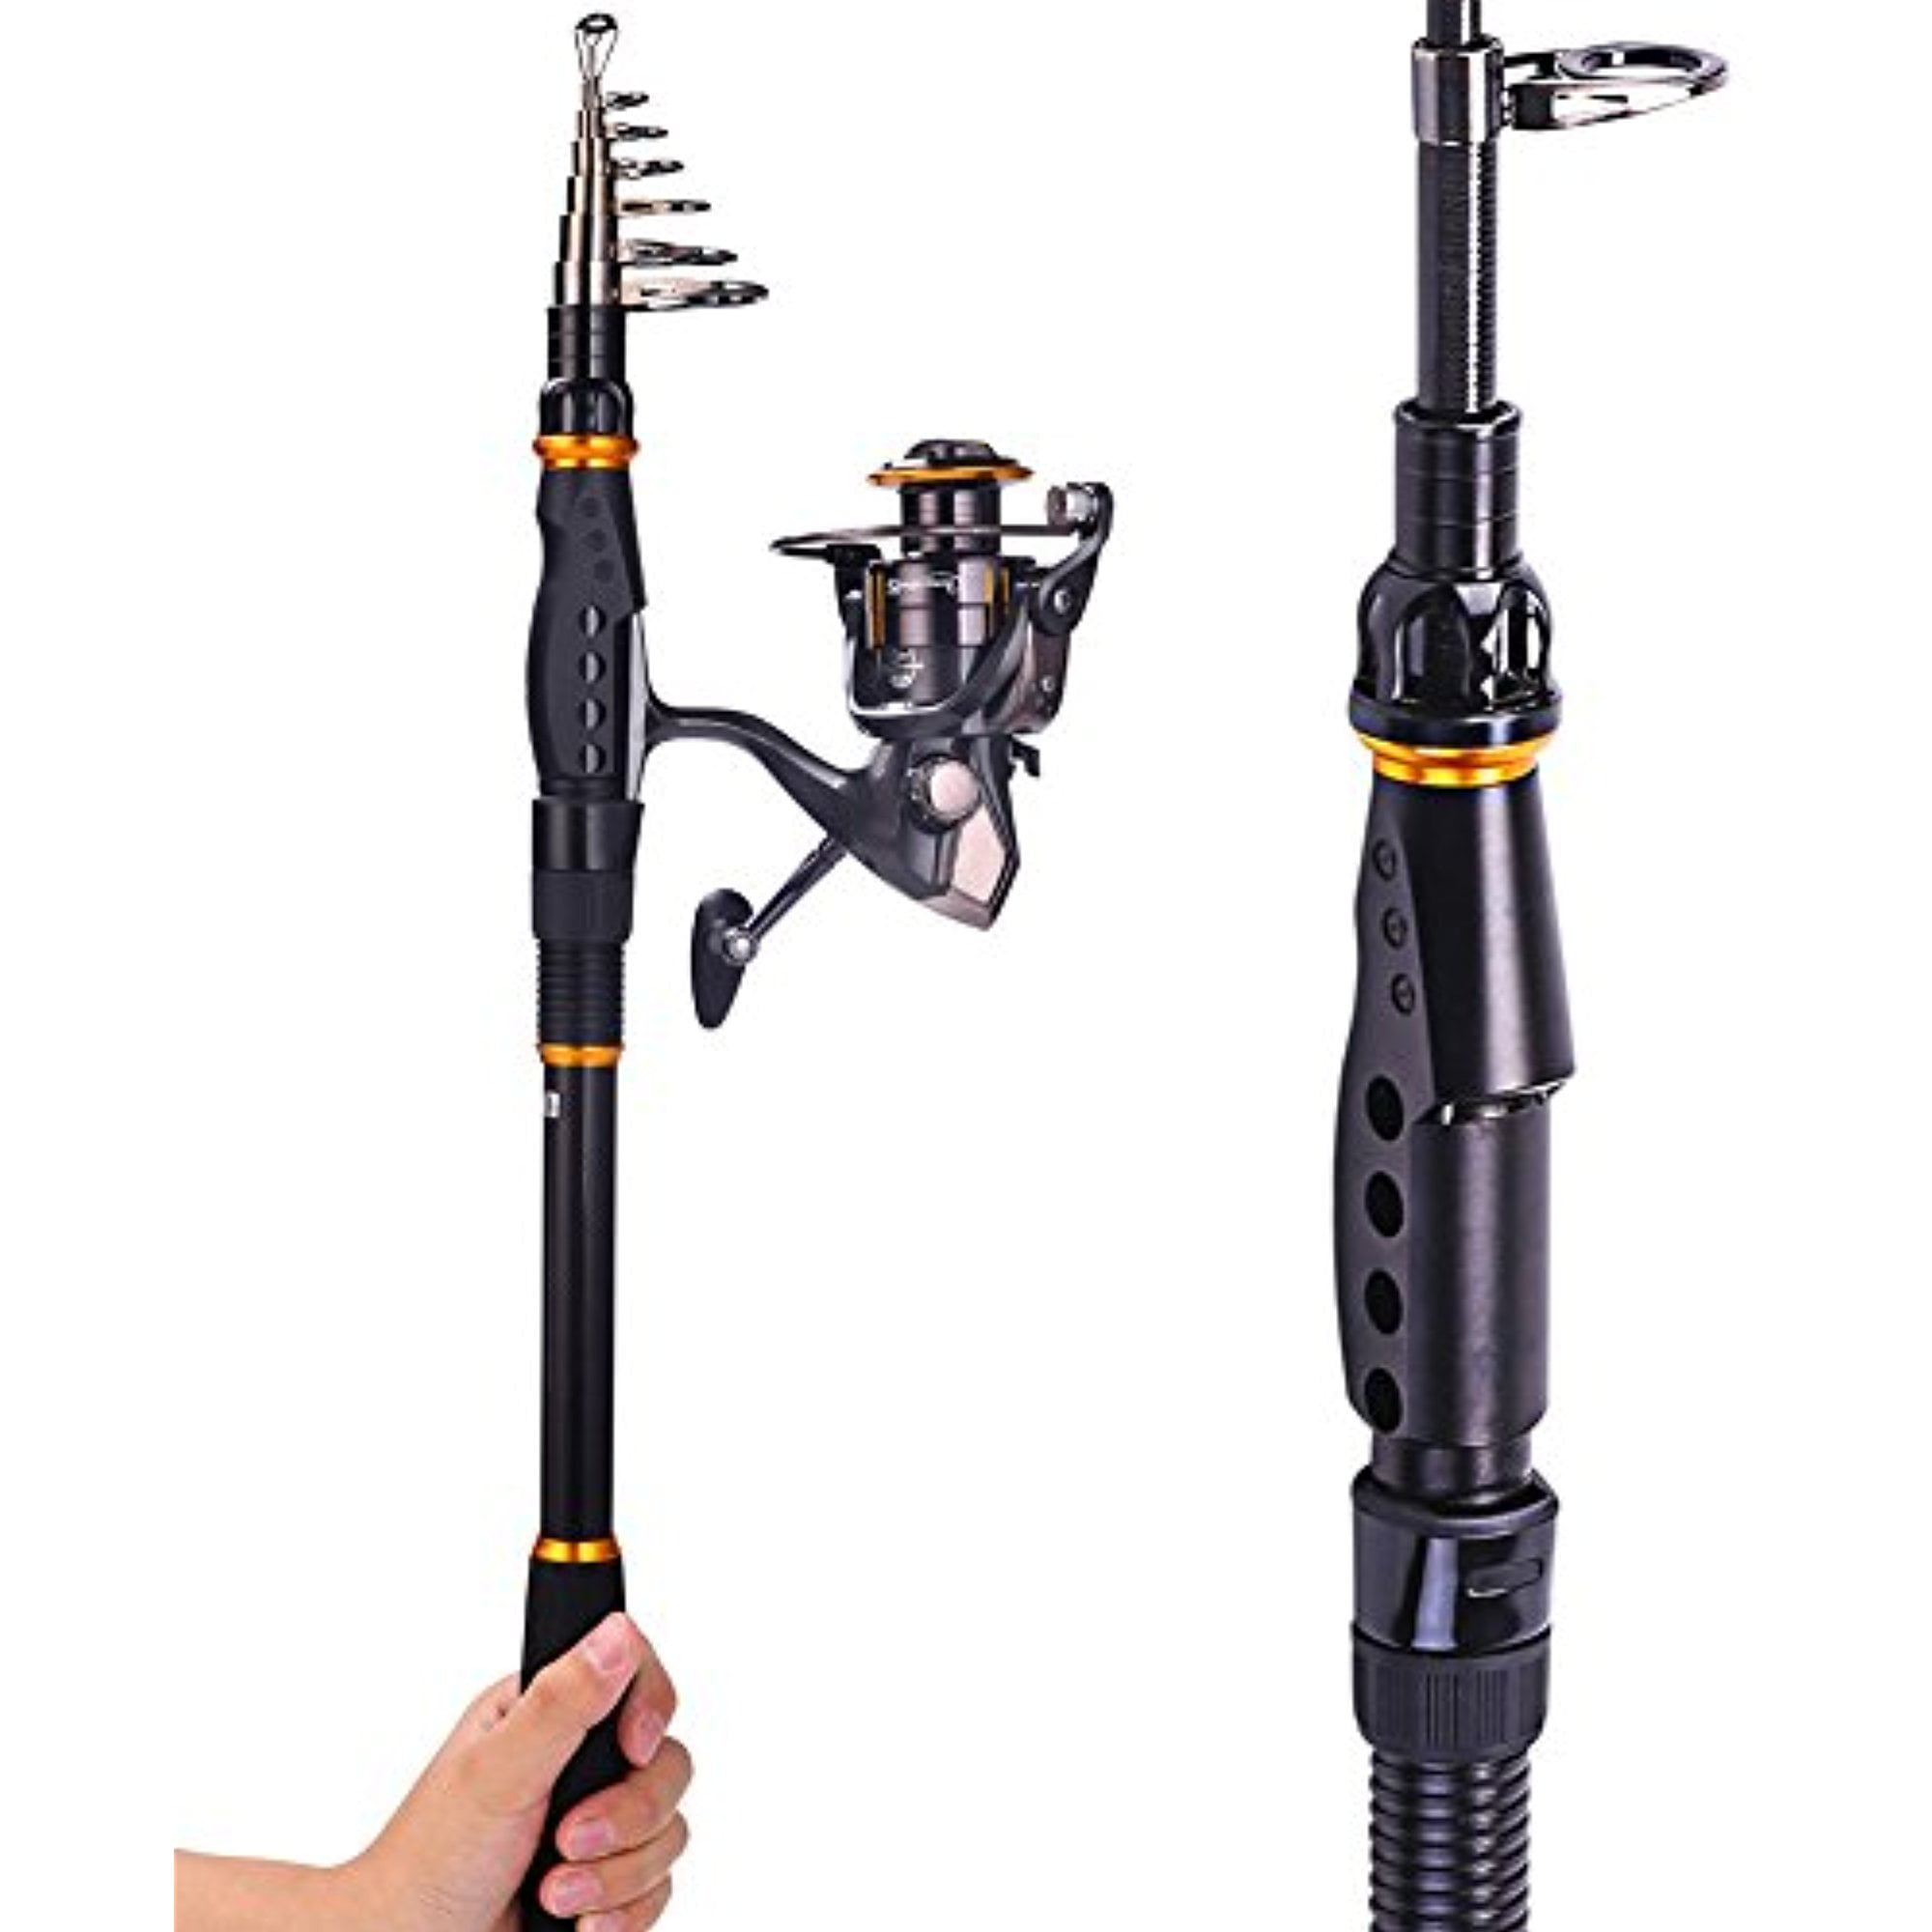 Click here to buy Sougayilang Spinning Telescopic Graphite Fishing Rod with Reel Combos Travel Portable Fishing Rods Pole and Fishing Reel....